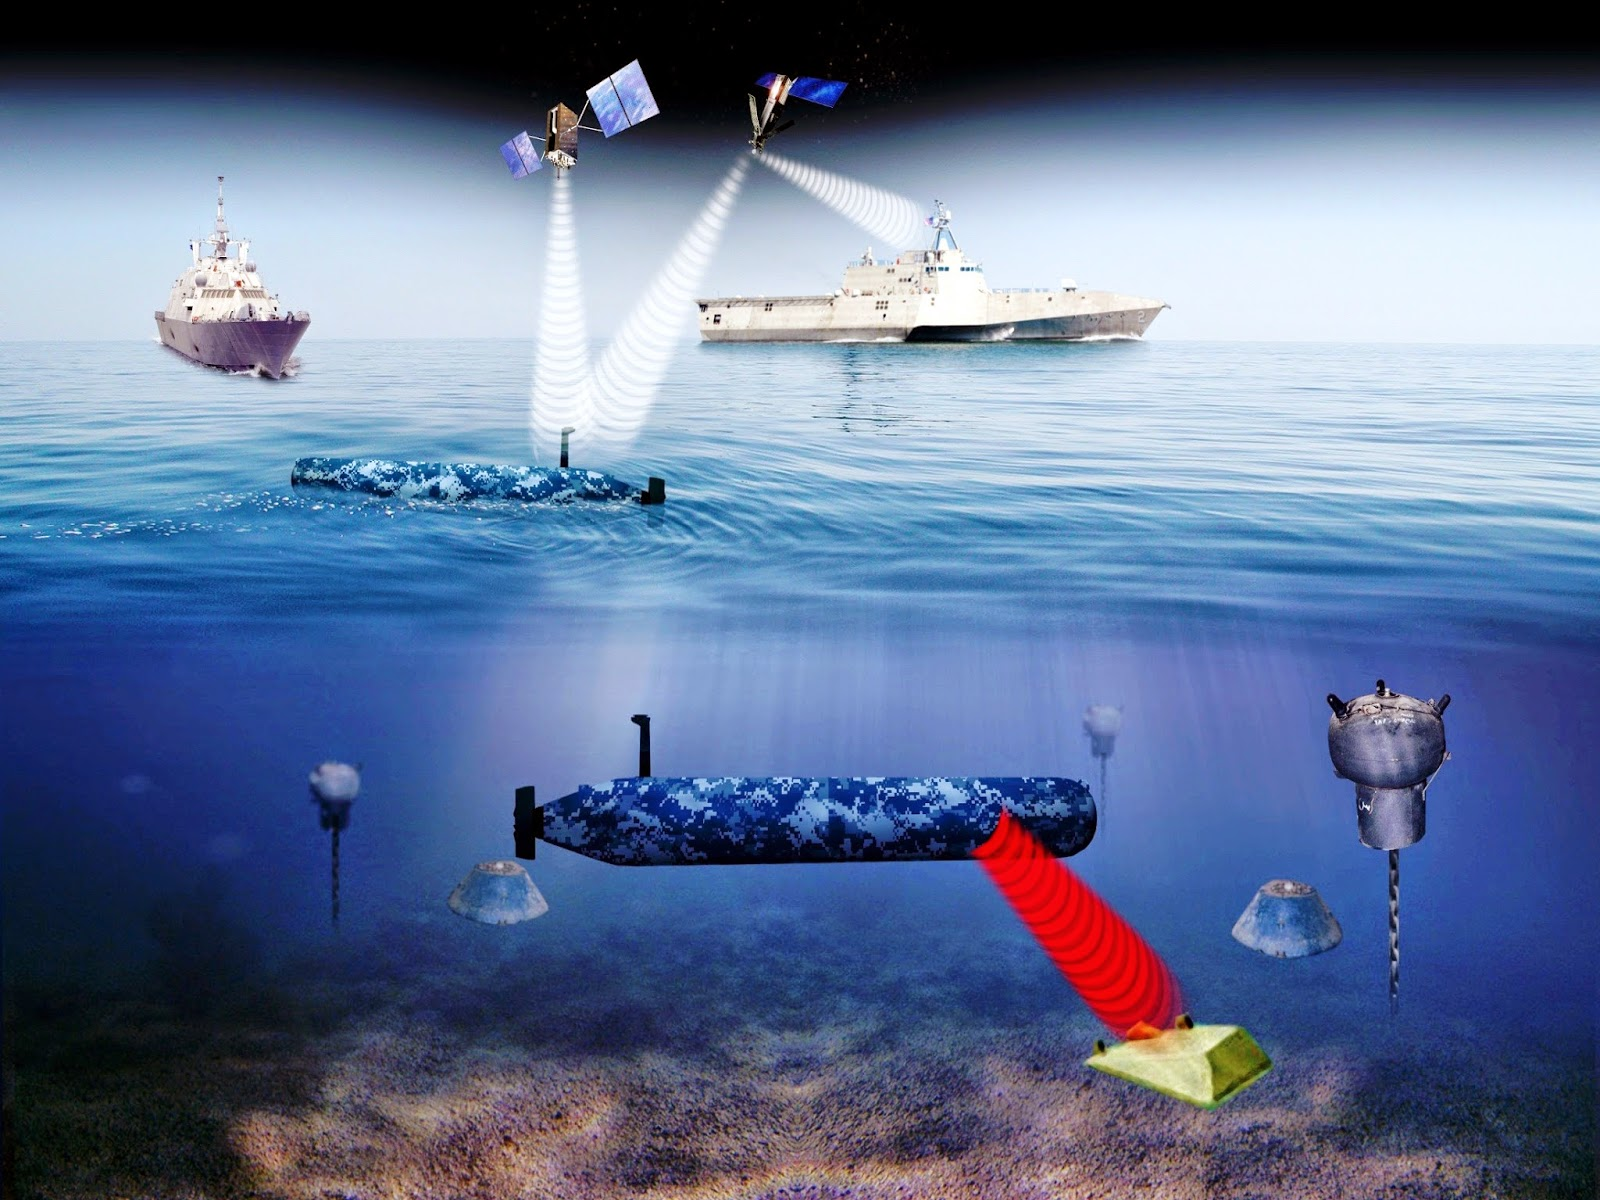 navy racing to test, field unmanned maritime vehicles for